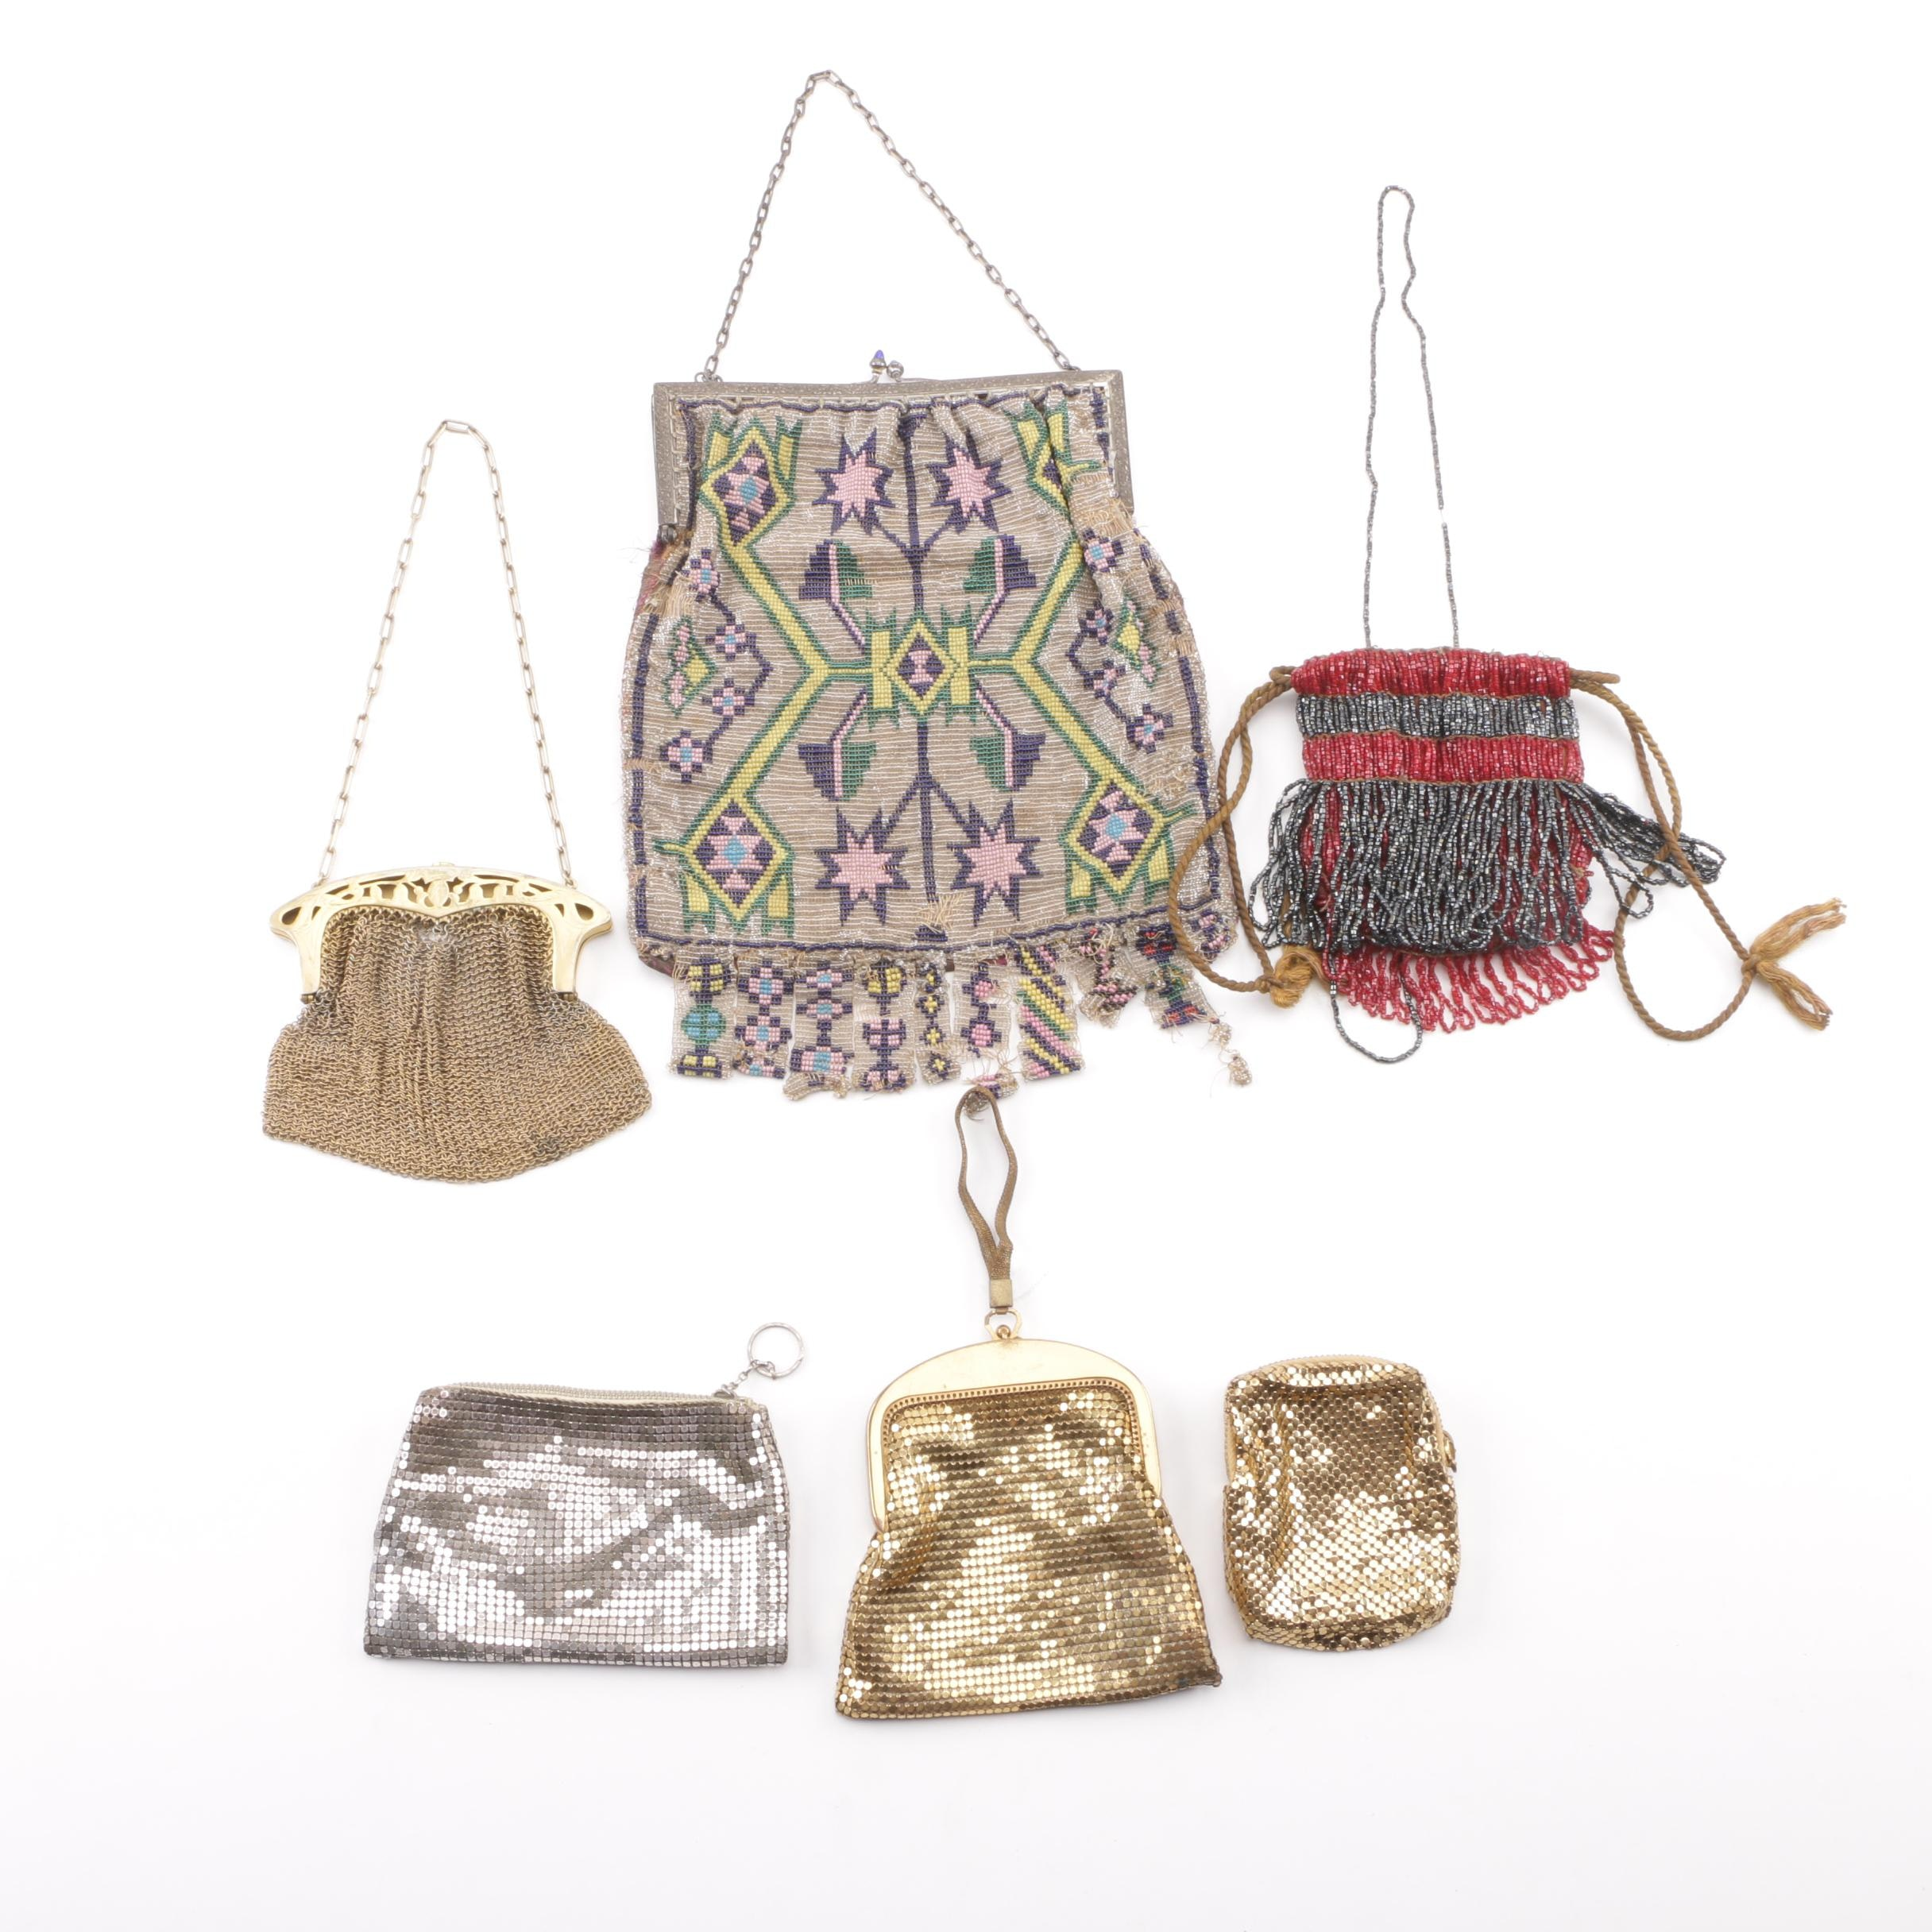 Edwardian Era and Art Deco Metal and Bead Evening Bags with Whiting & Davis